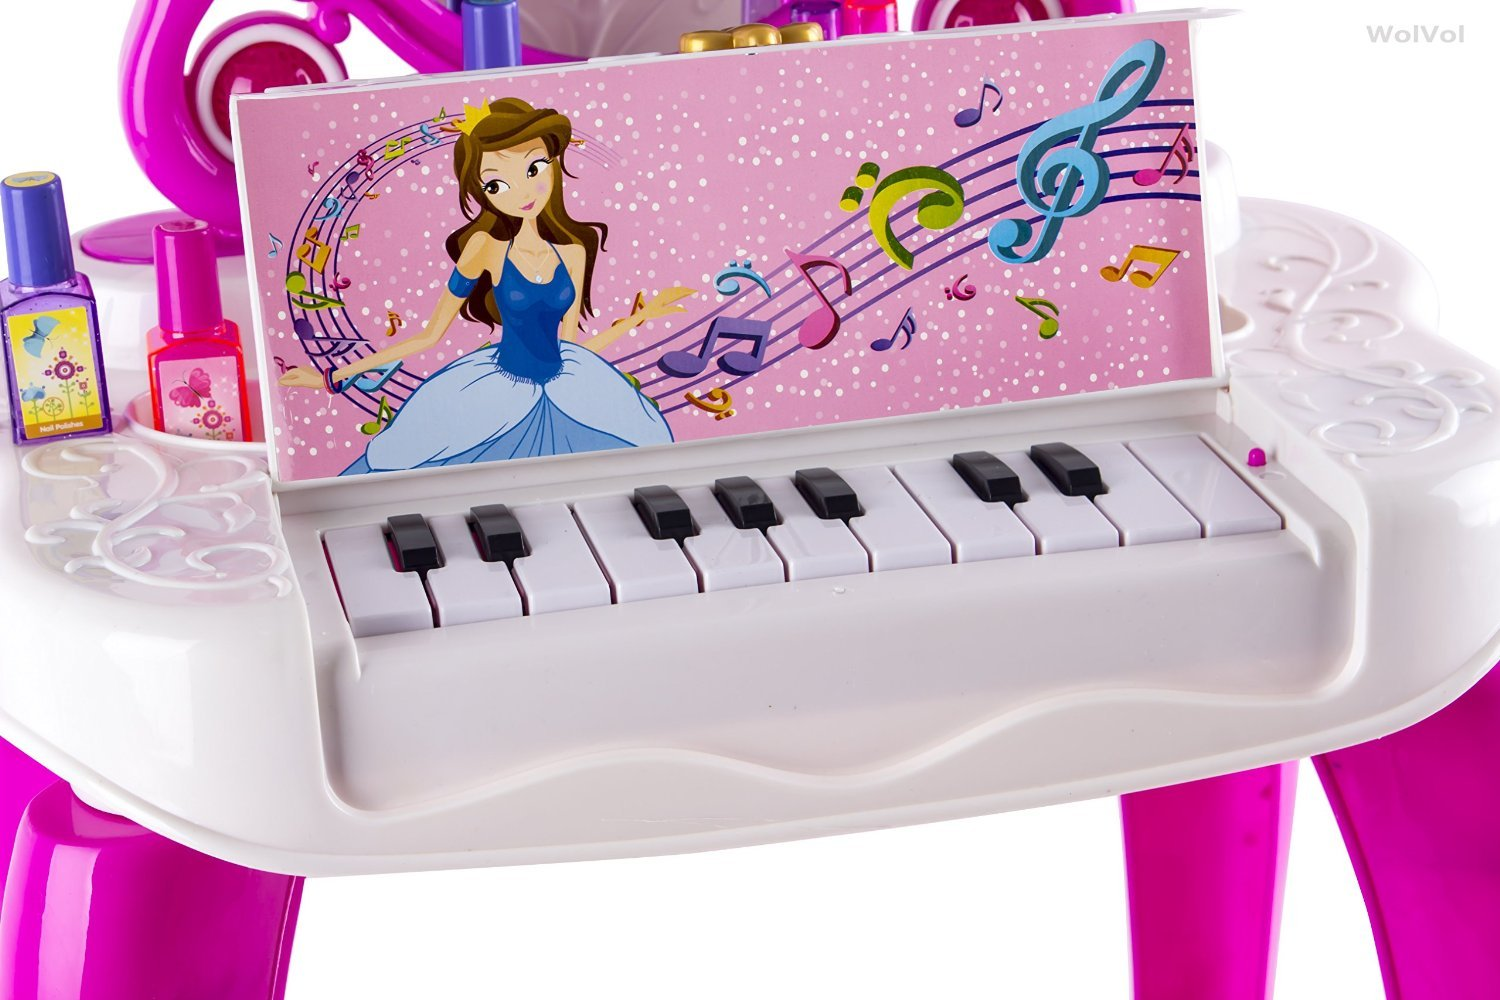 WolVol 2-in-1 Vanity Set Girls Toy Makeup Accessories with Working Piano & Flashing Lights, Big Mirror, Cosmetics, Working Hair Dryer - Glowing Princess Will Appear When Pressing The Mirror-Button by WolVol (Image #5)